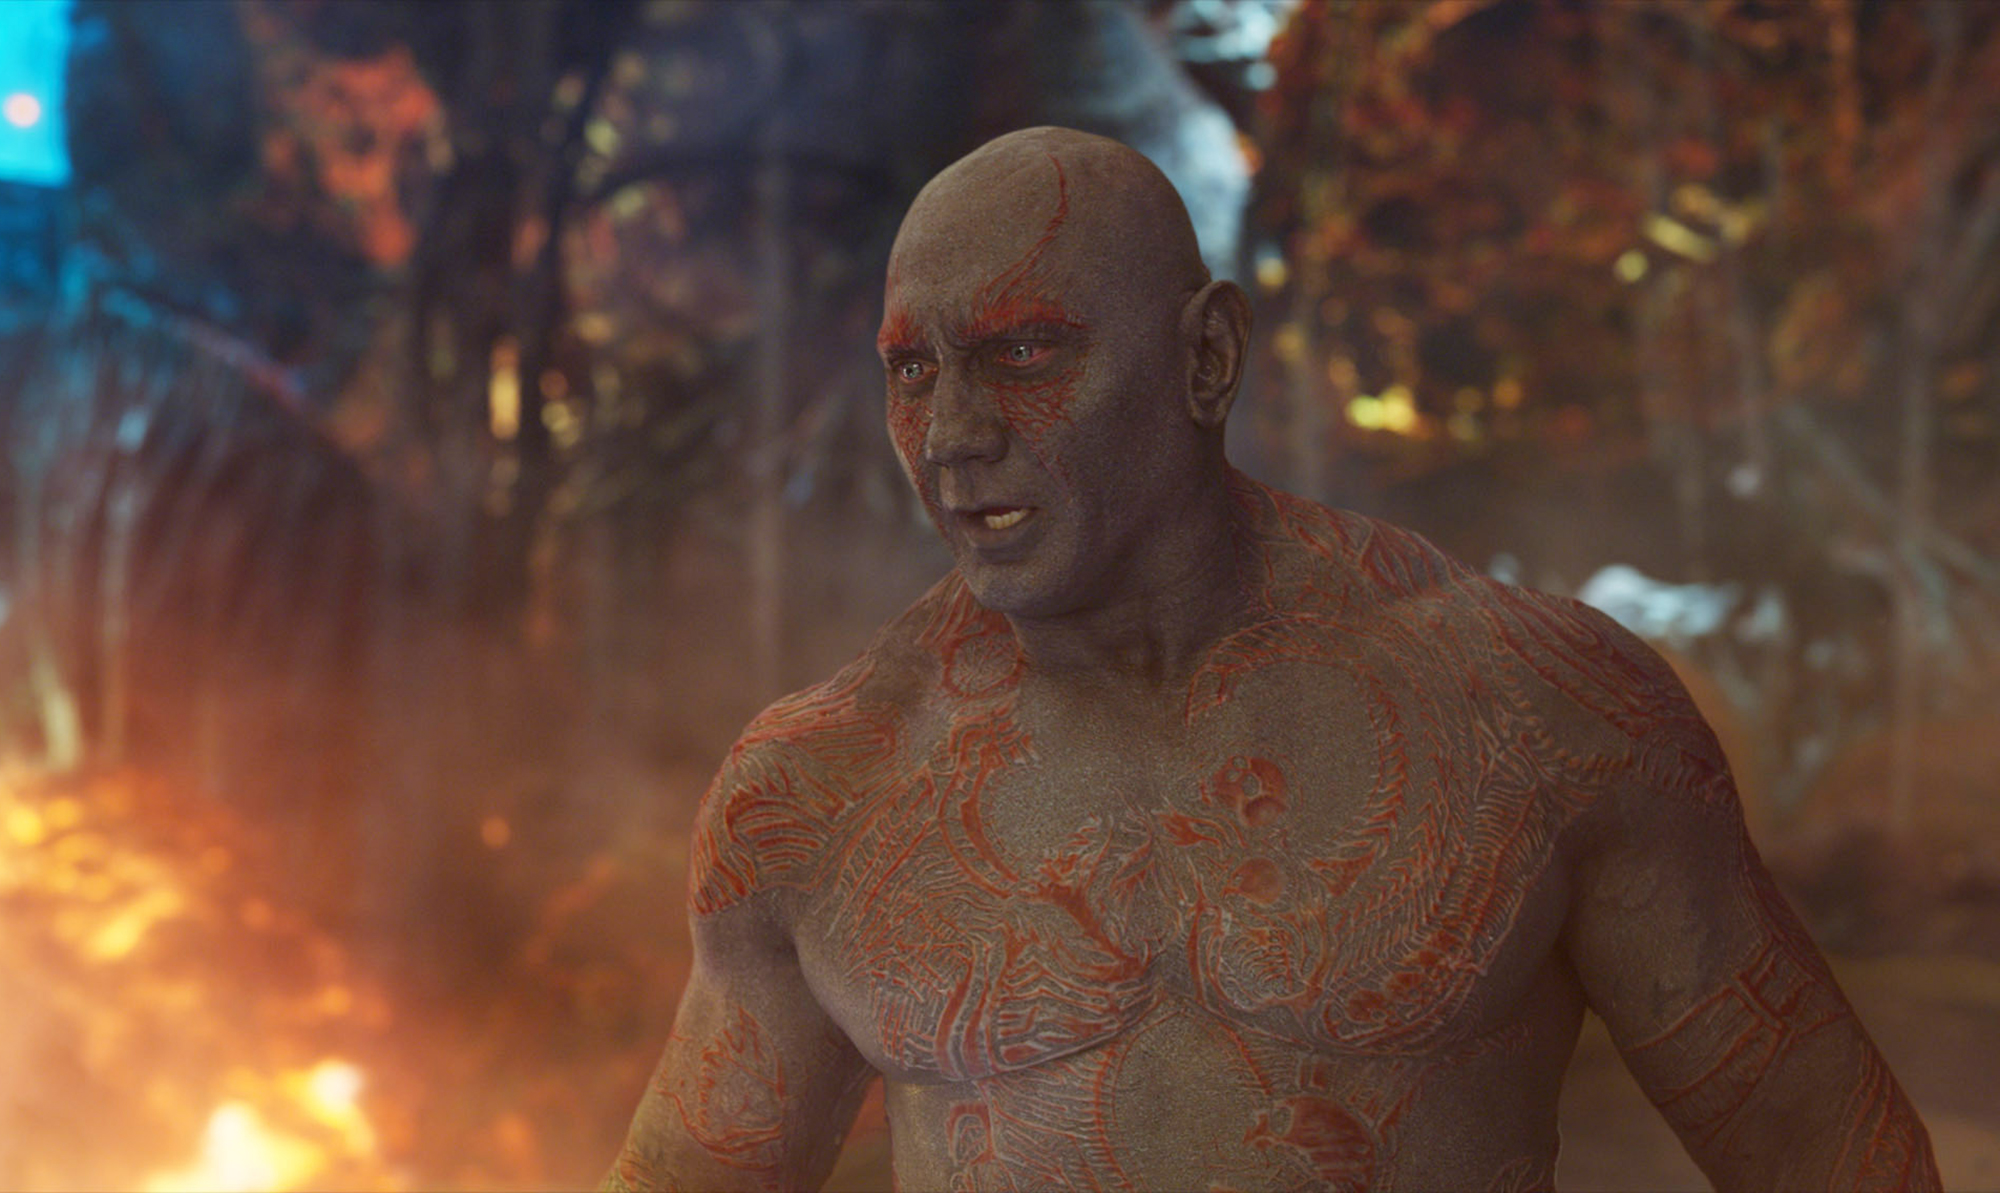 GUARDIANS OF THE GALAXY VOL. 2, Dave Bautista, 2017. ©Walt Disney Studios Motion Pictures/courtesy